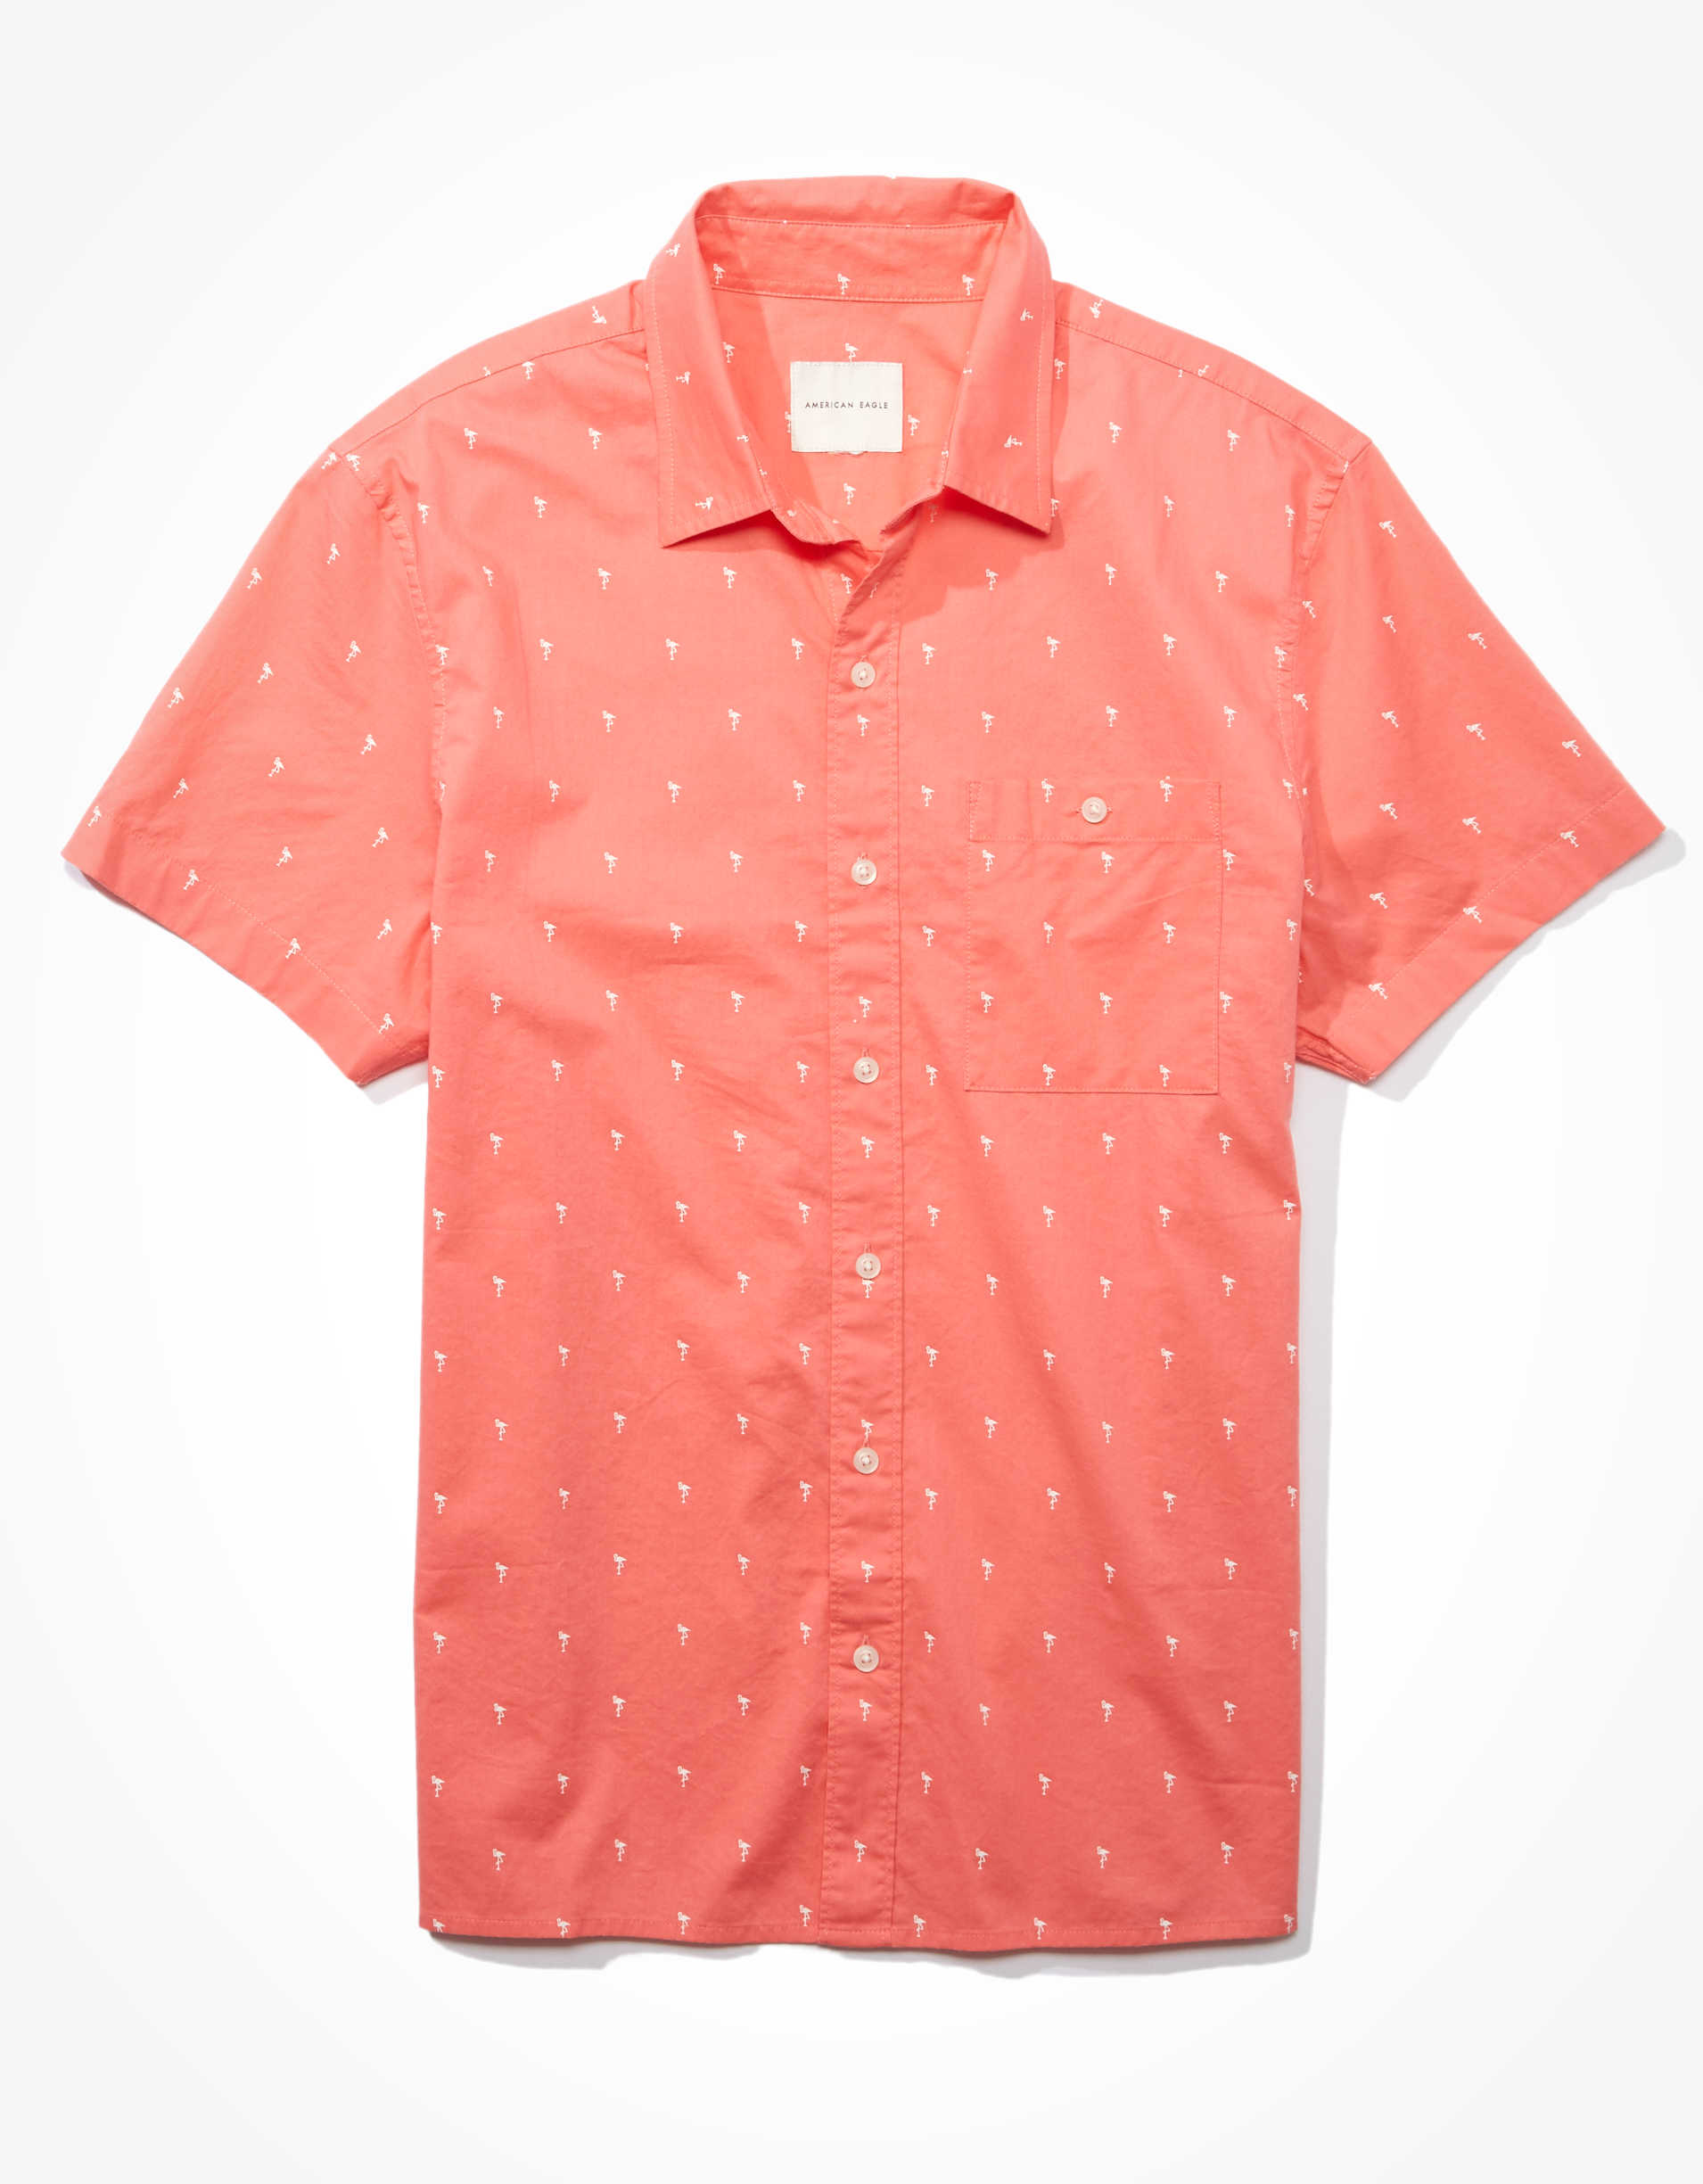 AE Short-Sleeve Printed Button-Up Shirt